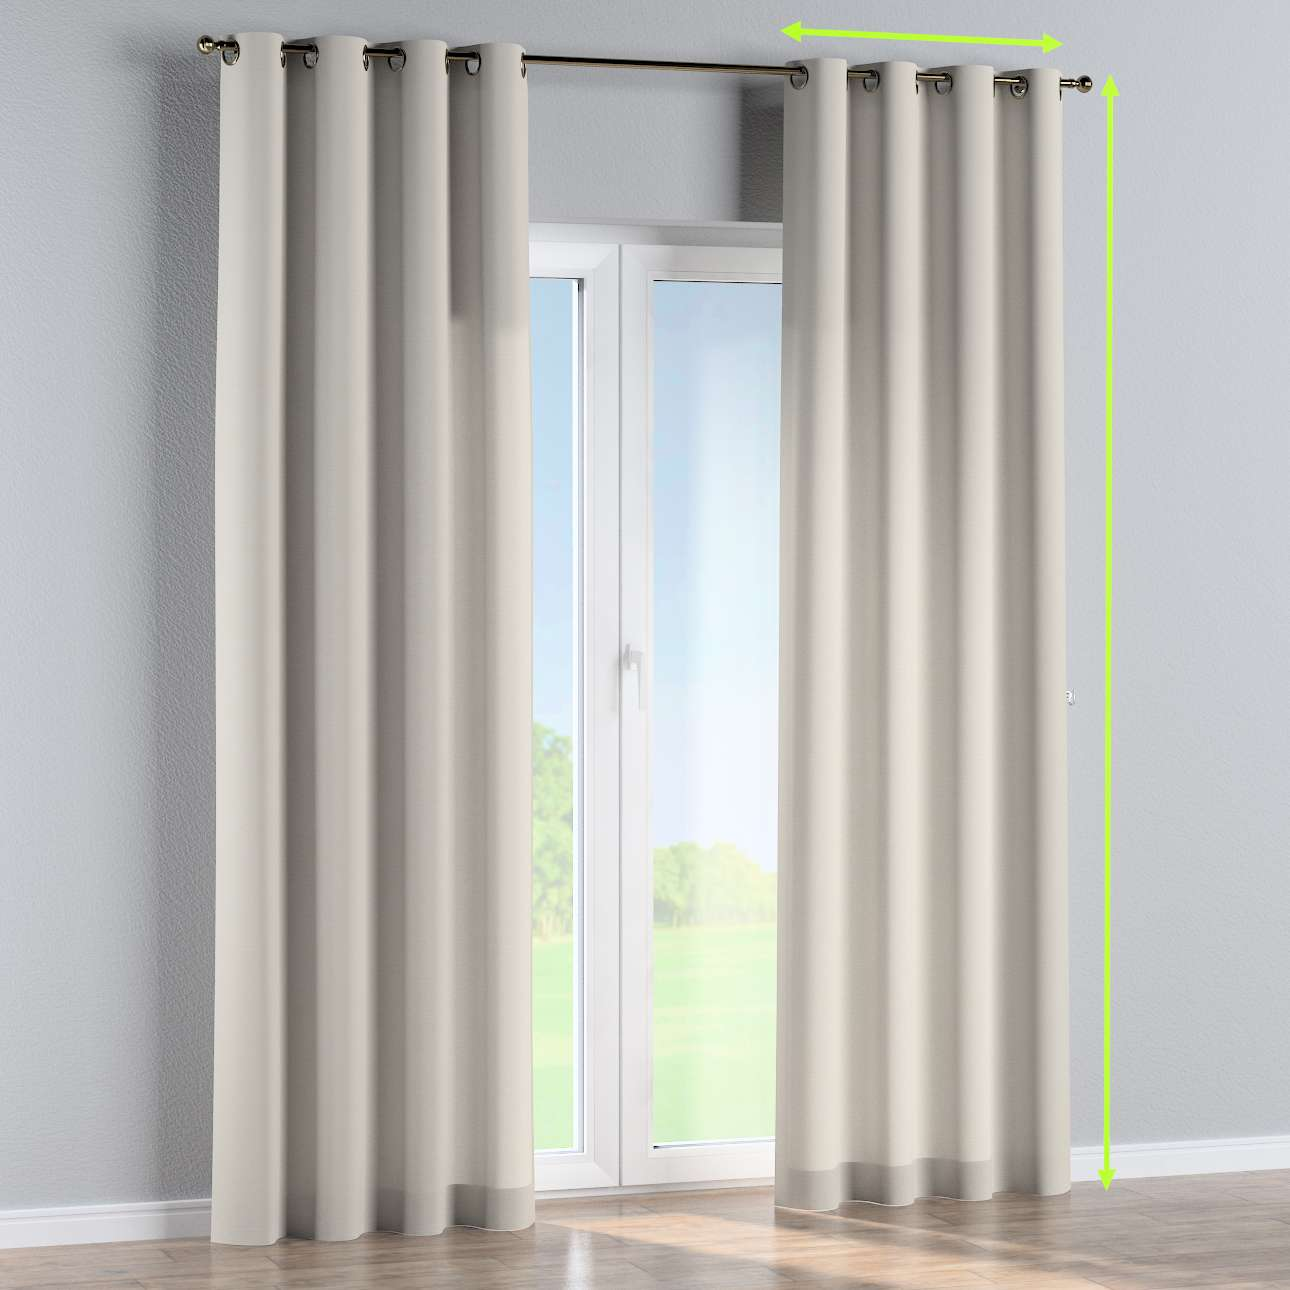 Eyelet lined curtains in collection Cotton Panama, fabric: 702-31